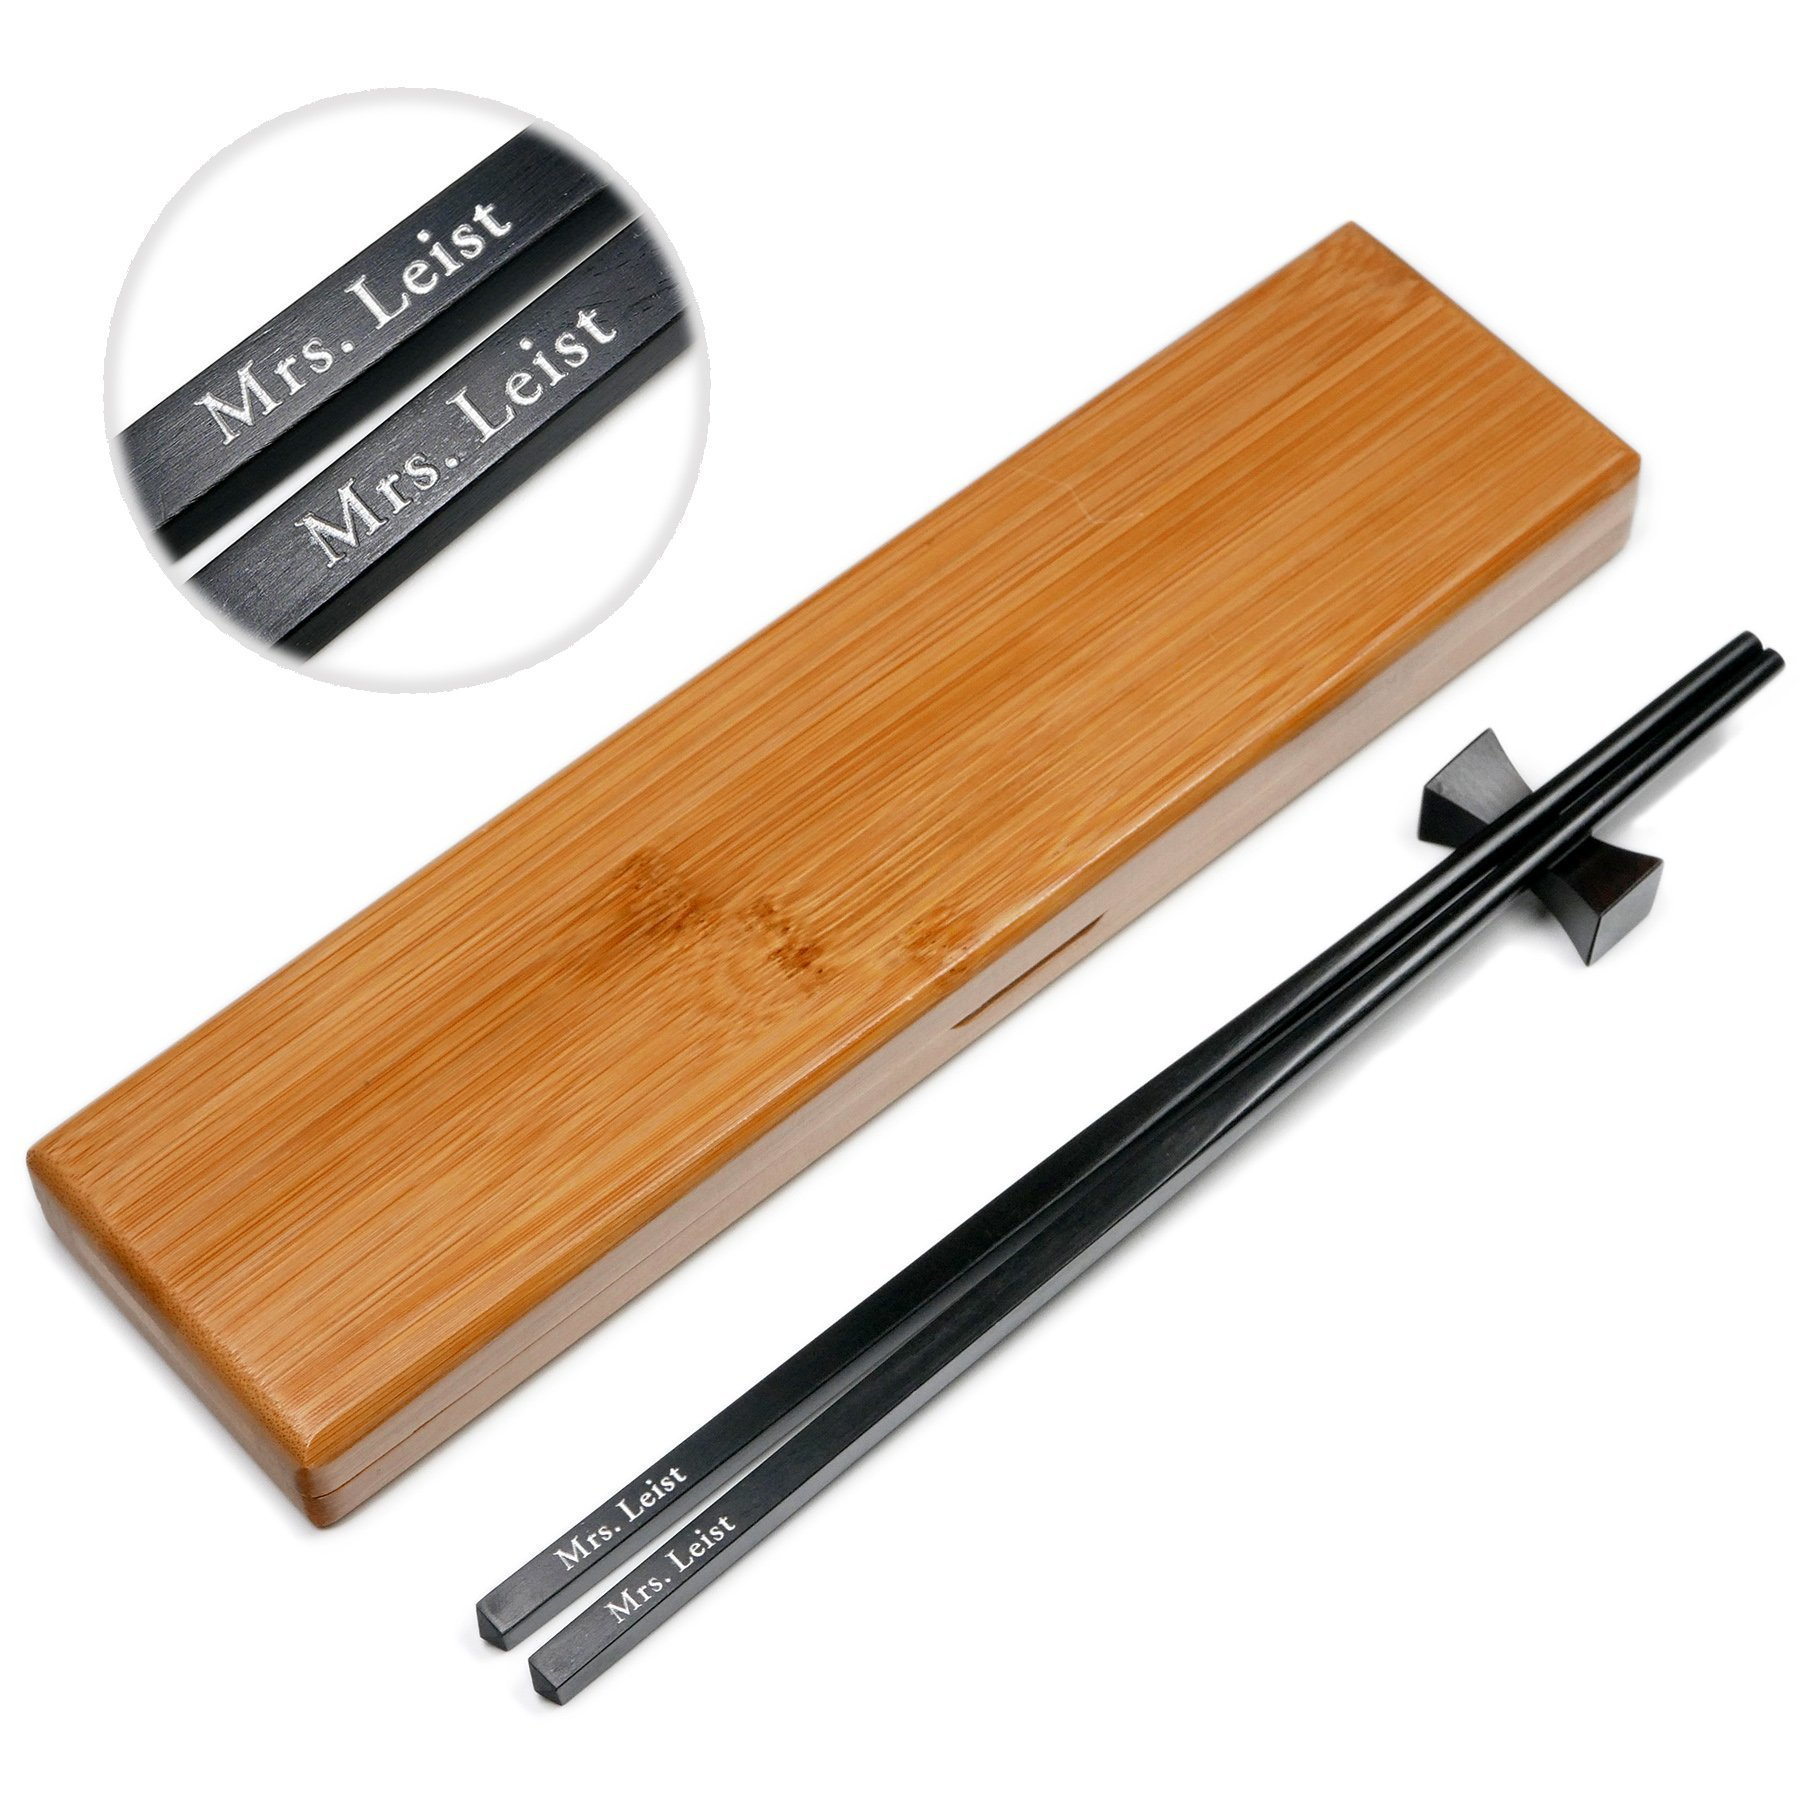 1 Pair Natural Black Ebony Wood Chopsticks - Custom Engraved With Personalized Names in Silver or Gold Color - In Classic Square handle Chinese or Japanese Style - Gift Set With Rest and Bamboo Case